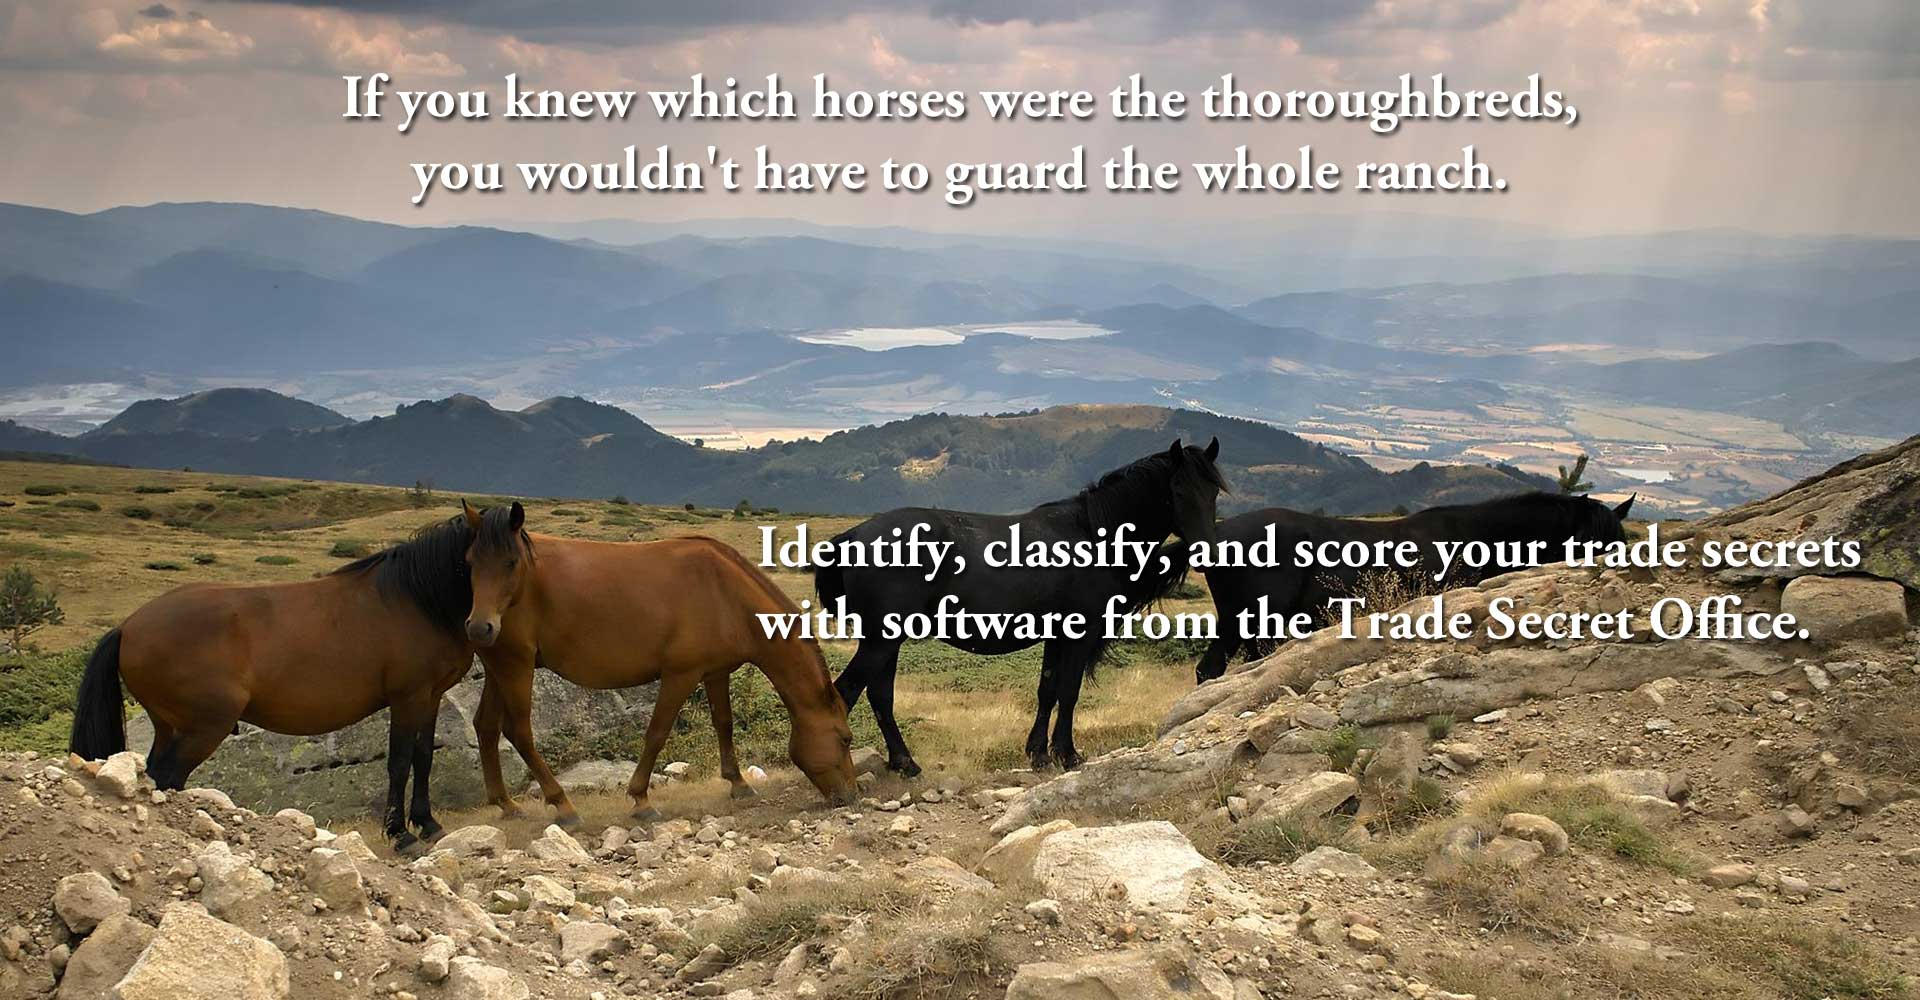 If you knew which horses were the thoroughbreds, you wouldn't have to guard the whole ranch.